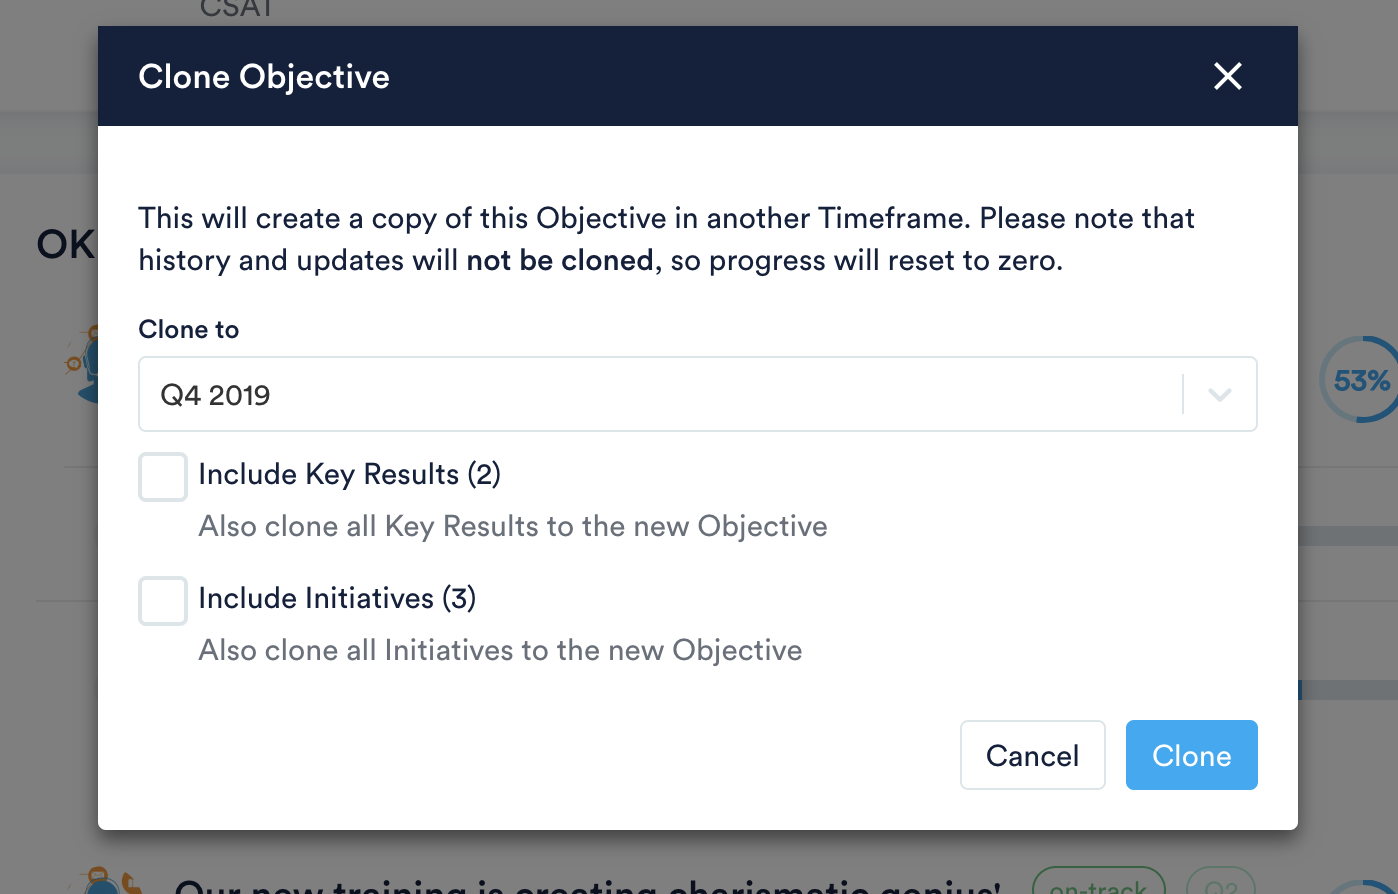 Clone Objective to certain timeframe with option to include Key Results and Initiatives